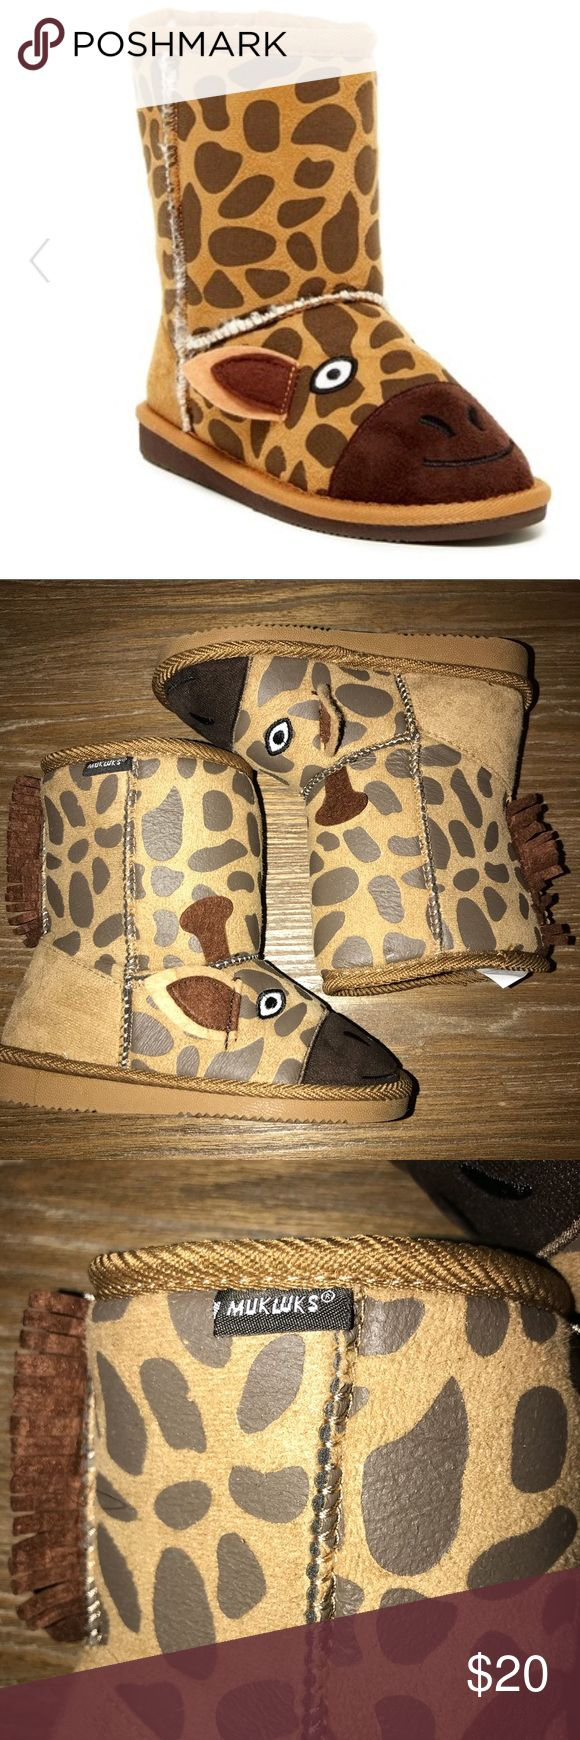 MUK LUKS Gabby Giraffe Faux Fur Lined Boots Toddler/Little Kid Size 10   New without Box! Excellent!   These quirky boots will be a definite favorite for your little one! - Round toe - Giraffe face embroidered vamp with ear applique detail - Allover print - Pull-on - Faux fur lining - Solid contrast back with fringe trim detail - Imported Muk Luks Shoes Boots